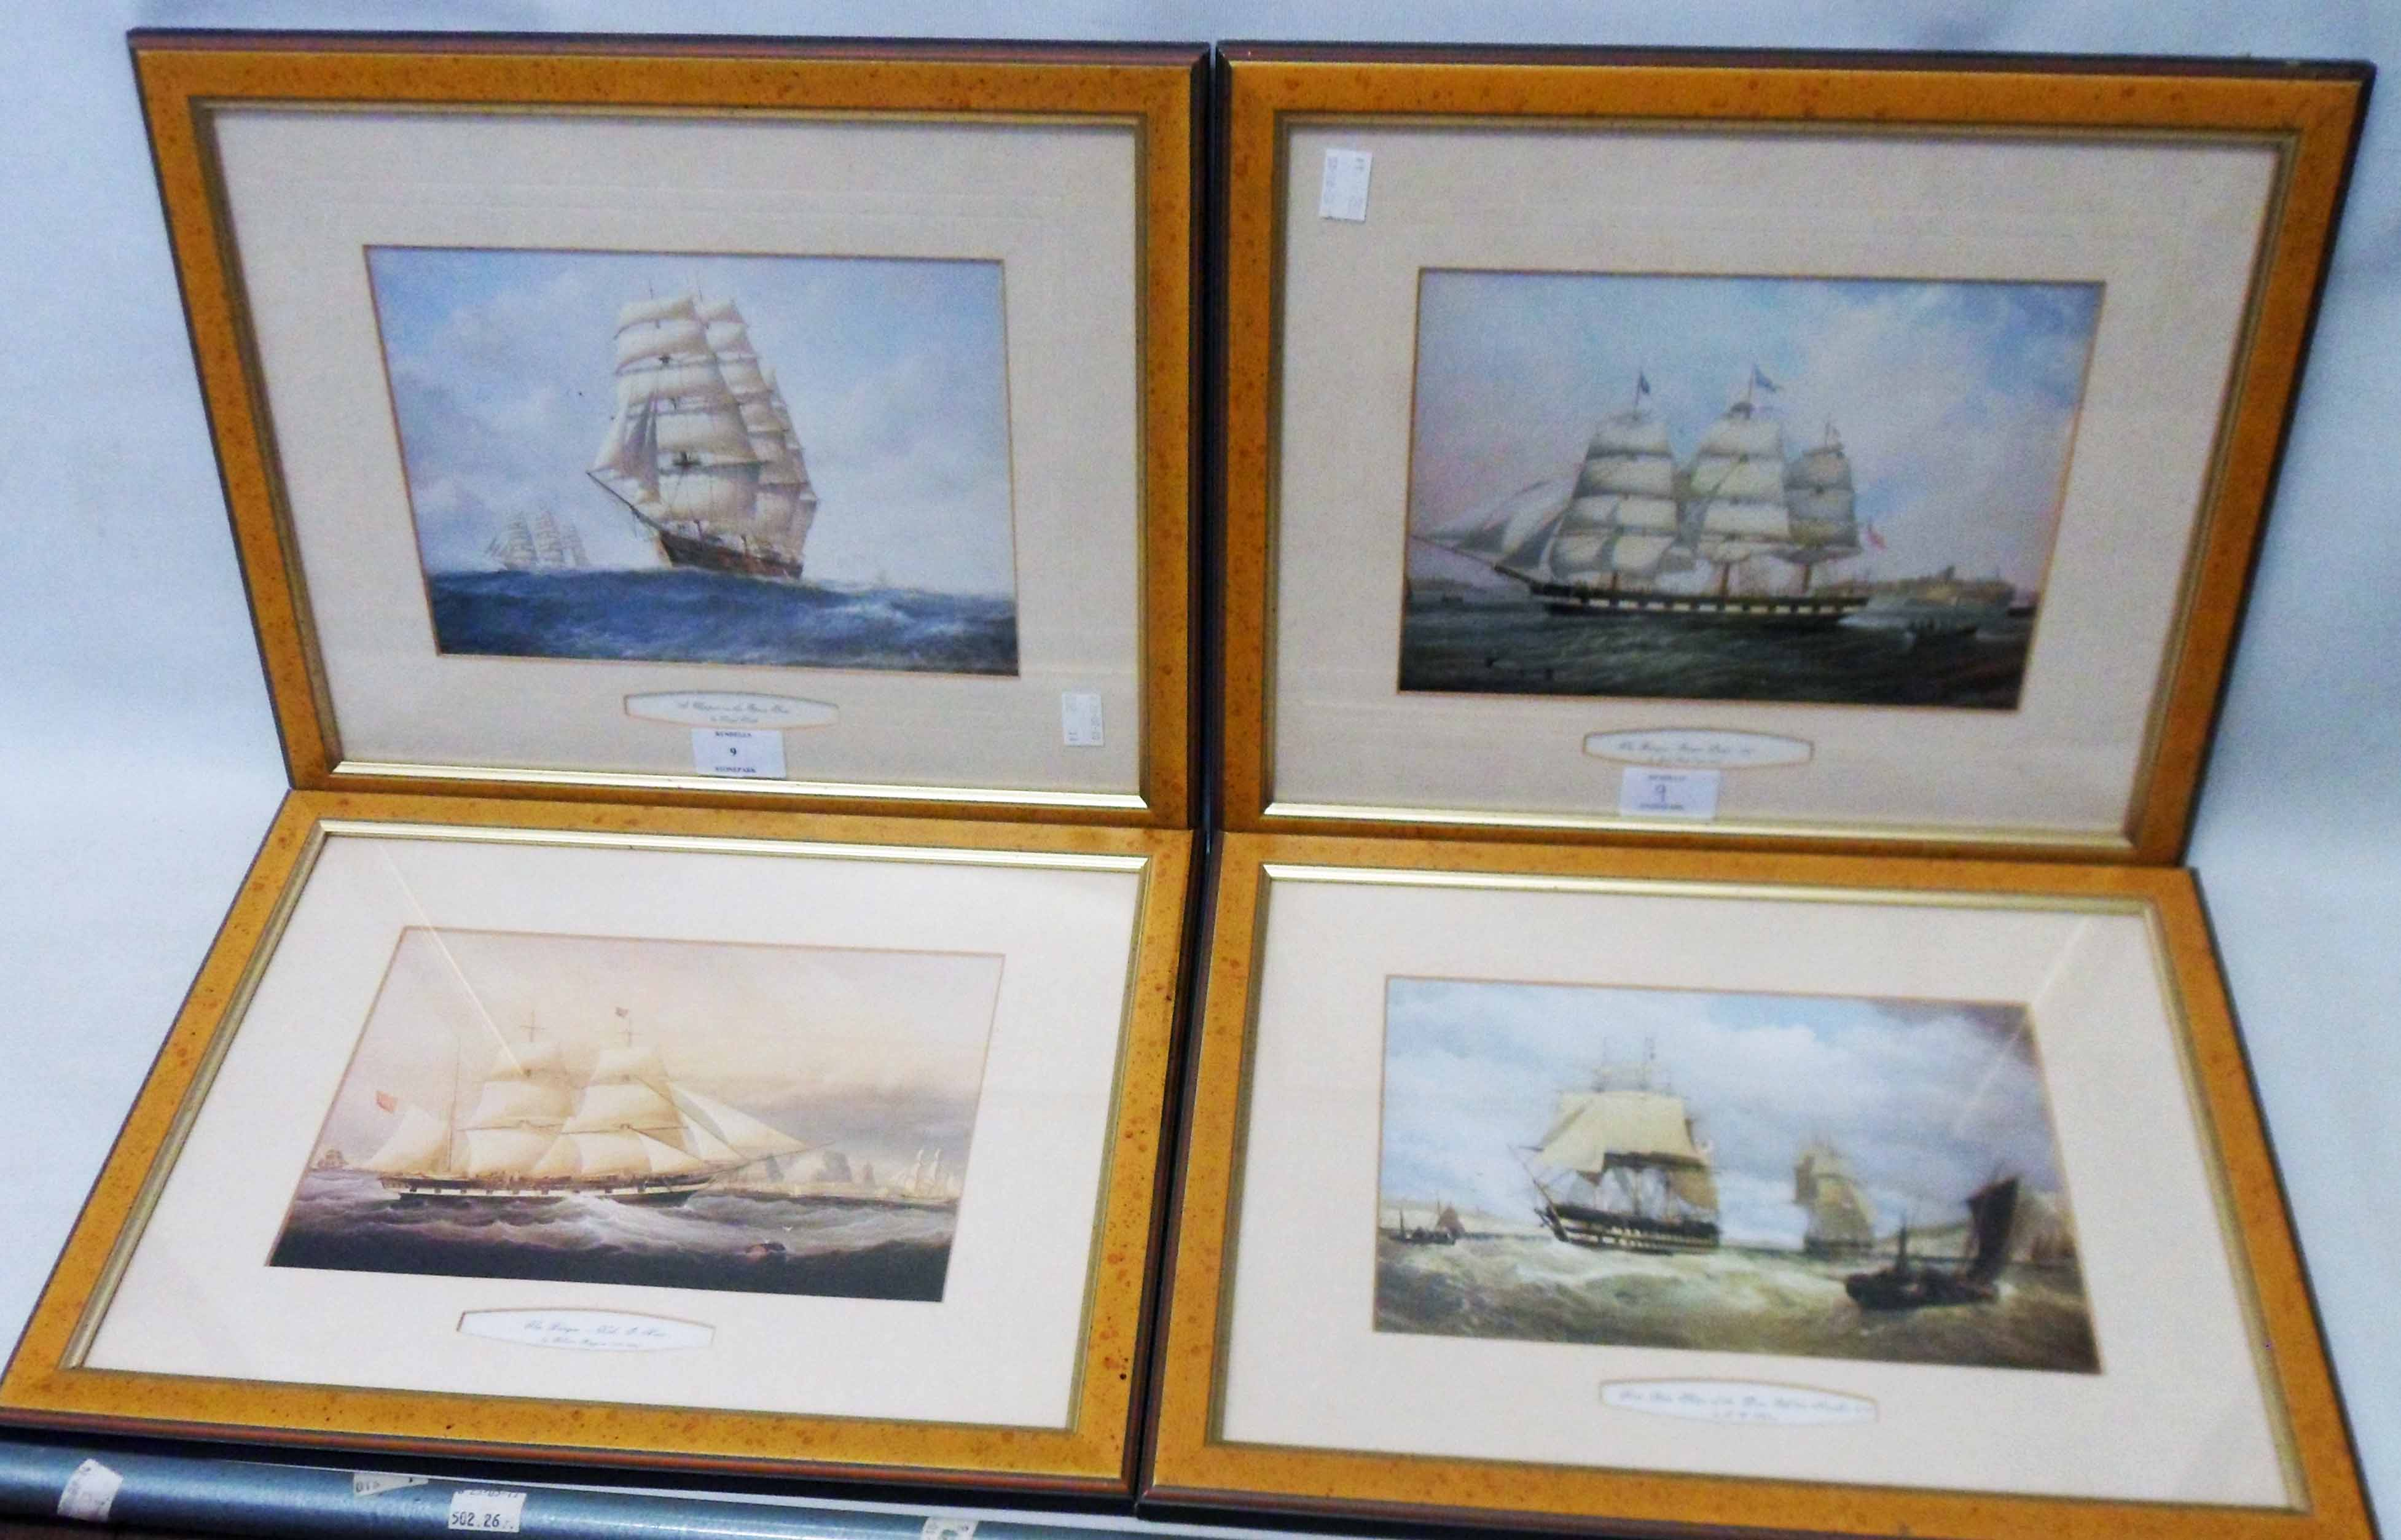 Four matching framed modern maritime prints, all depicting 19th Century sailing vessels